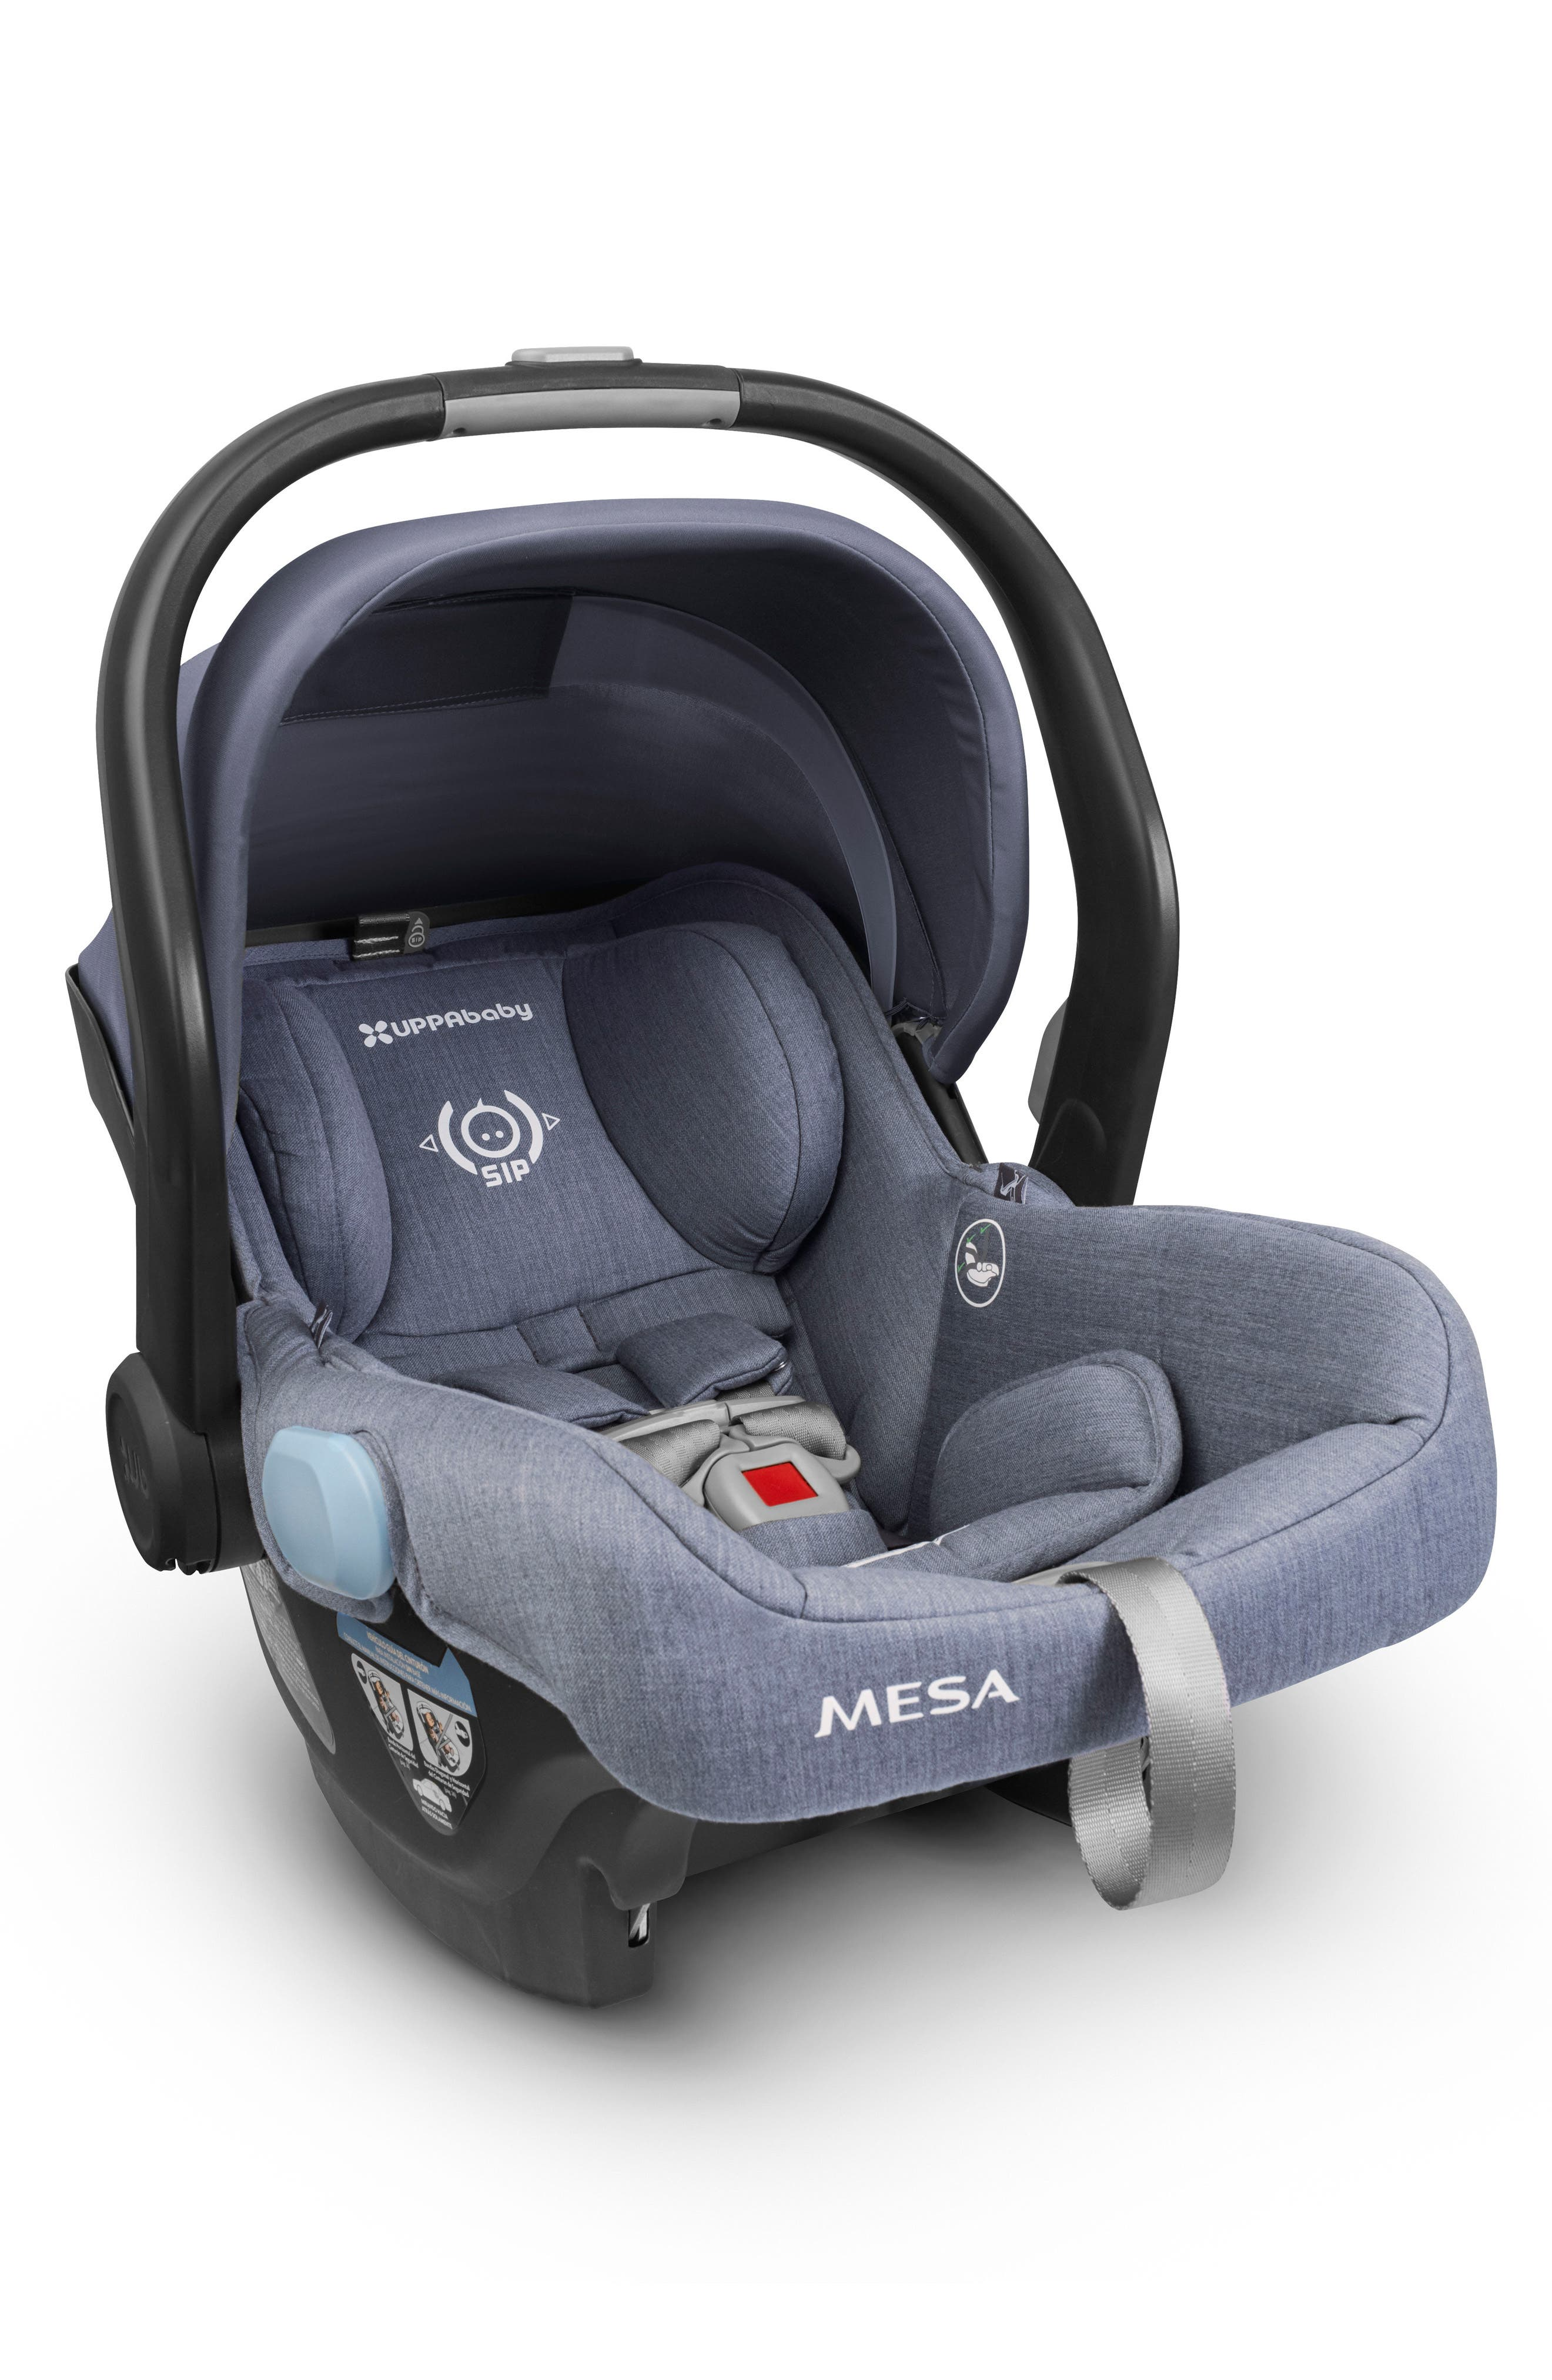 Infant Car Seats: Booster Seats, Baby Car